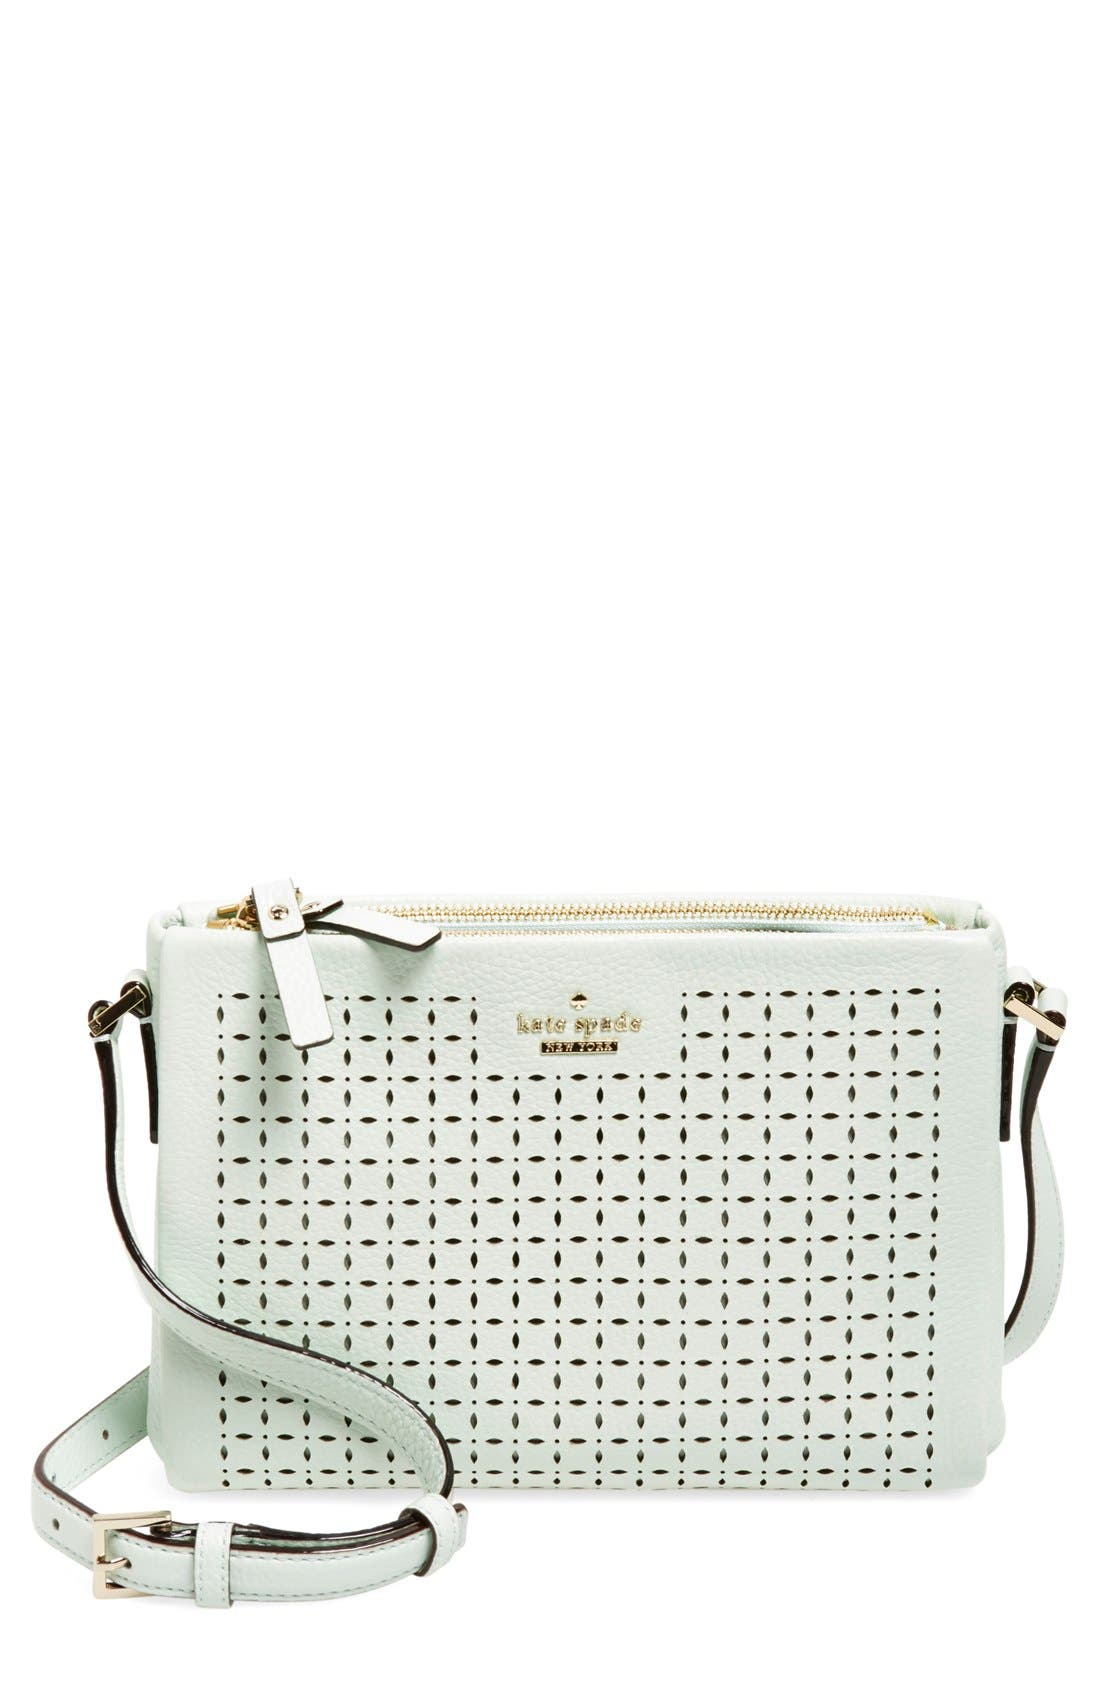 Main Image - kate spade new york 'milton lane - lilibeth' perforated leather crossbody bag (Nordstrom Exclusive)